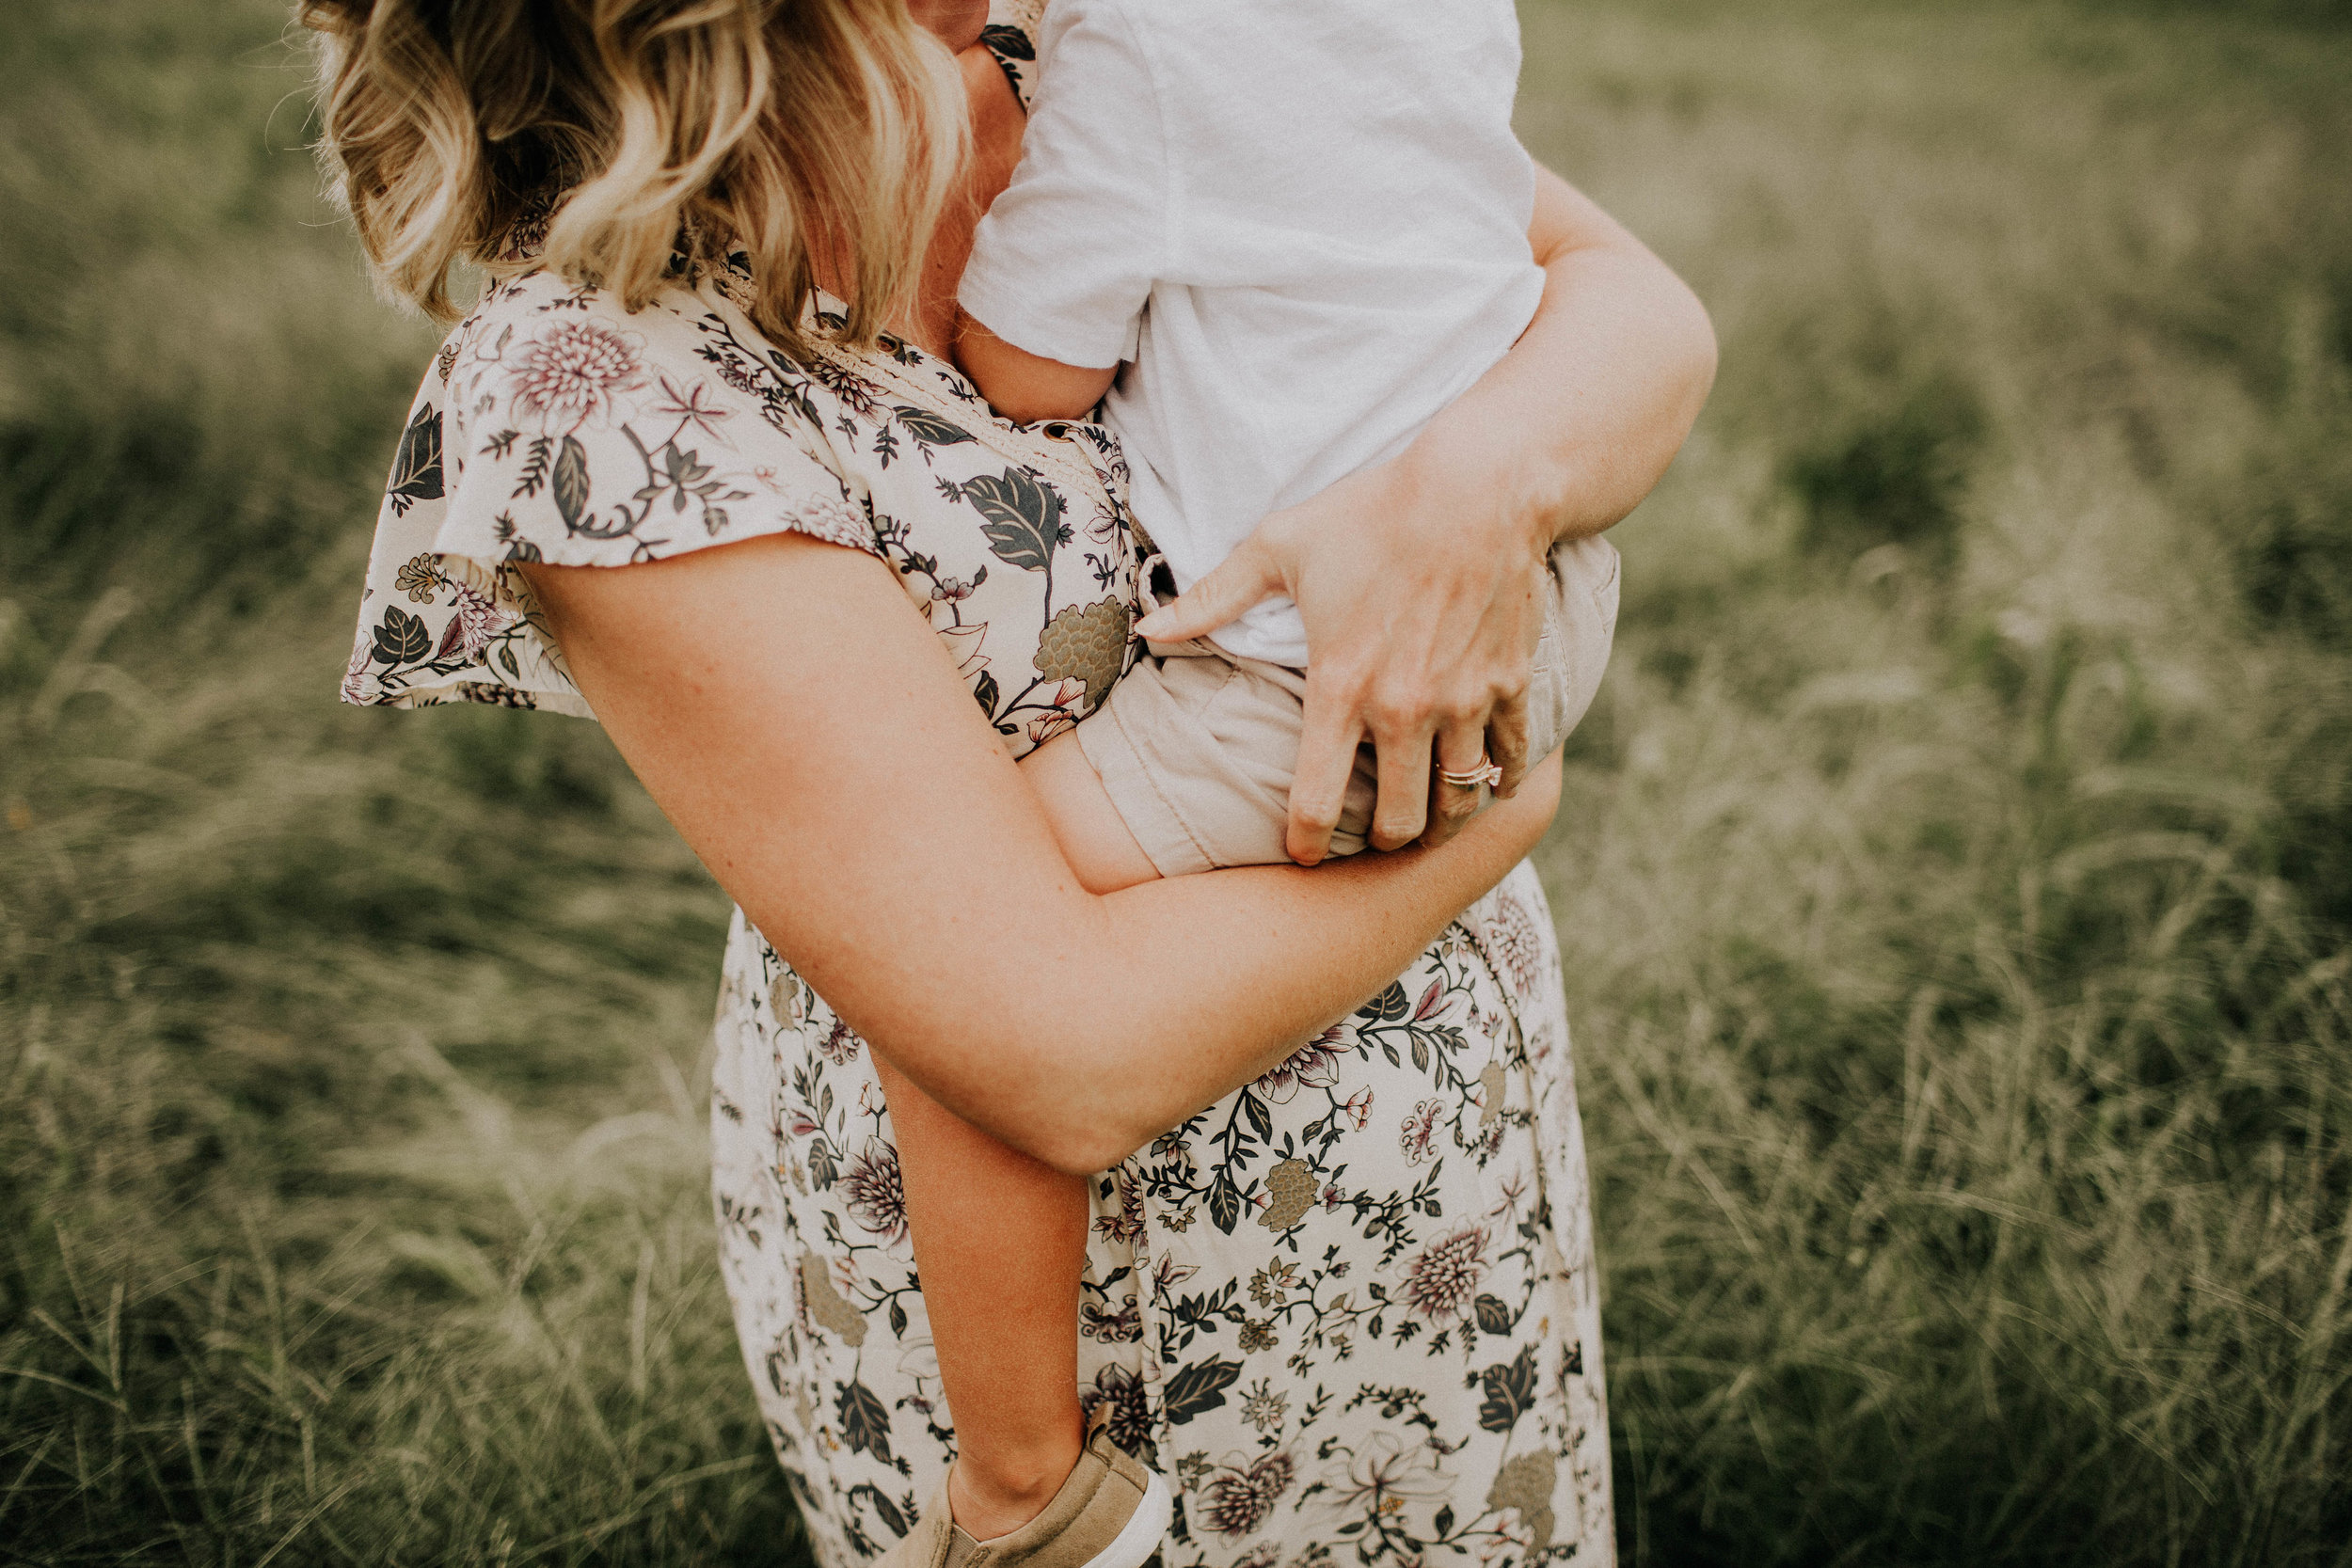 - Wanting to document the miracle your body is growing? All we need is a short session to let you remember these sweet moments prior to the arrival of your newborn. 20 minute session in studio or outdoors. $100 retainer fee at the time of booking. $175 remaining balance the day of your session.